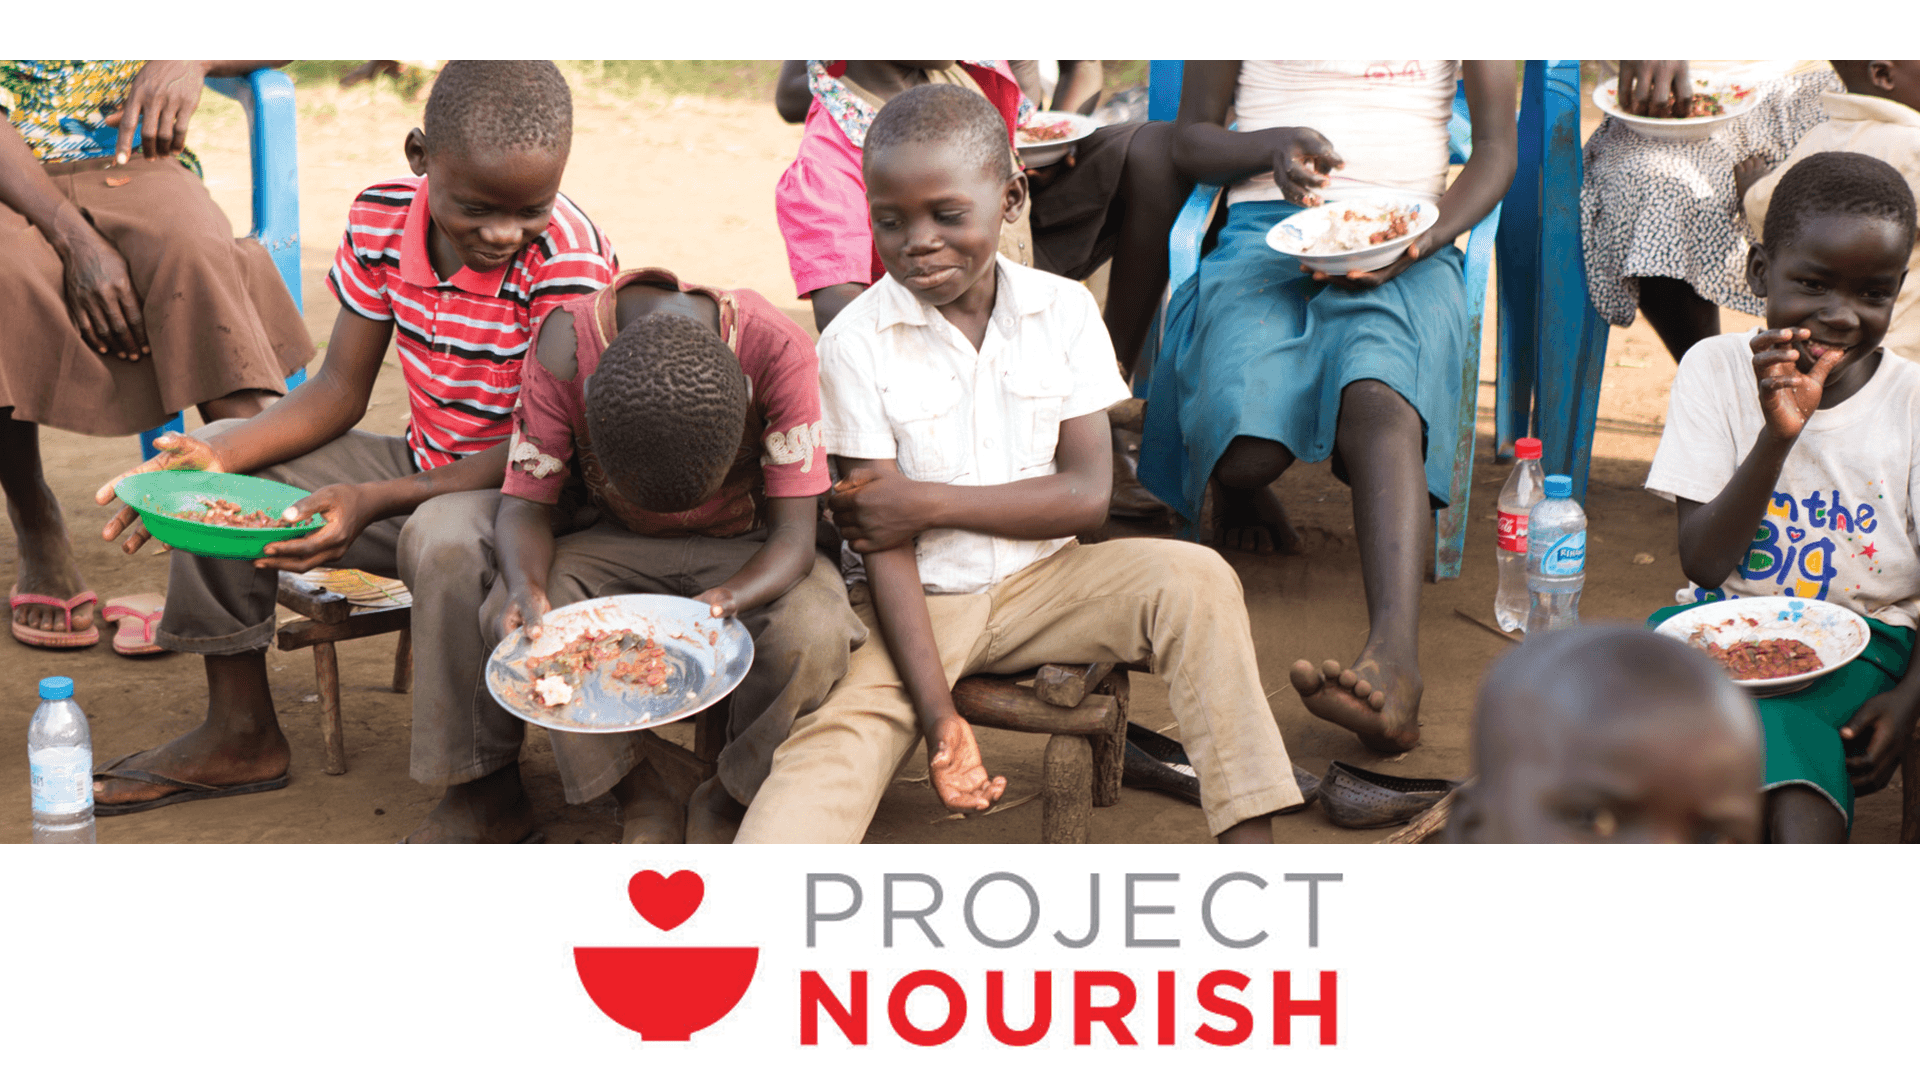 PROJECT NOURISH PACKING EVENT logo